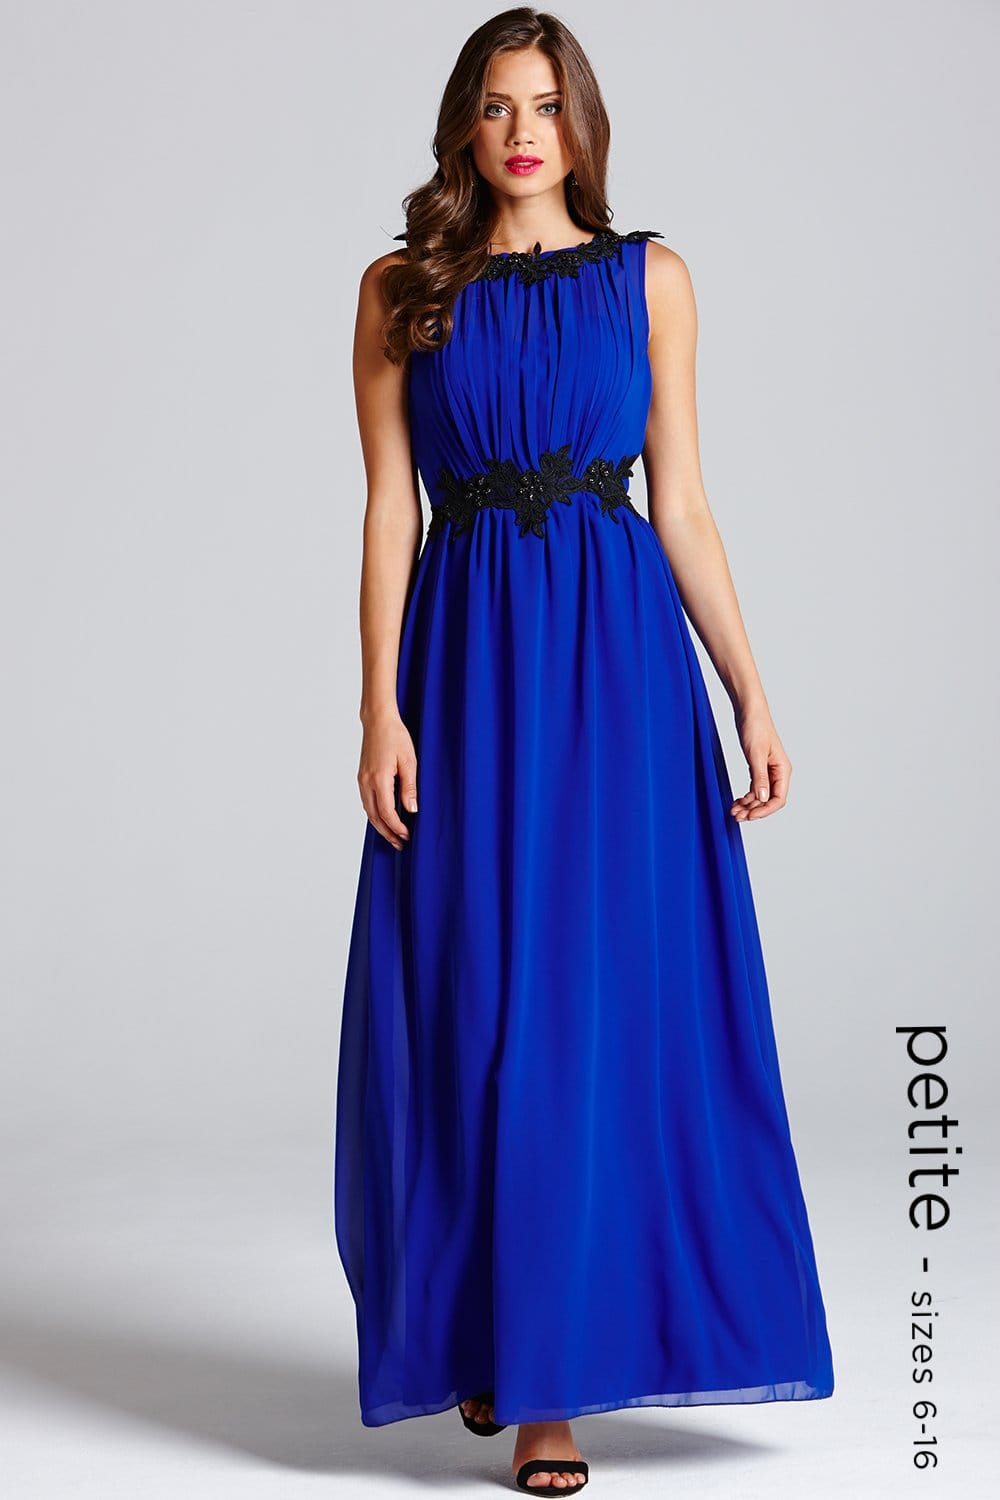 Maxi Dresses For Petite Women